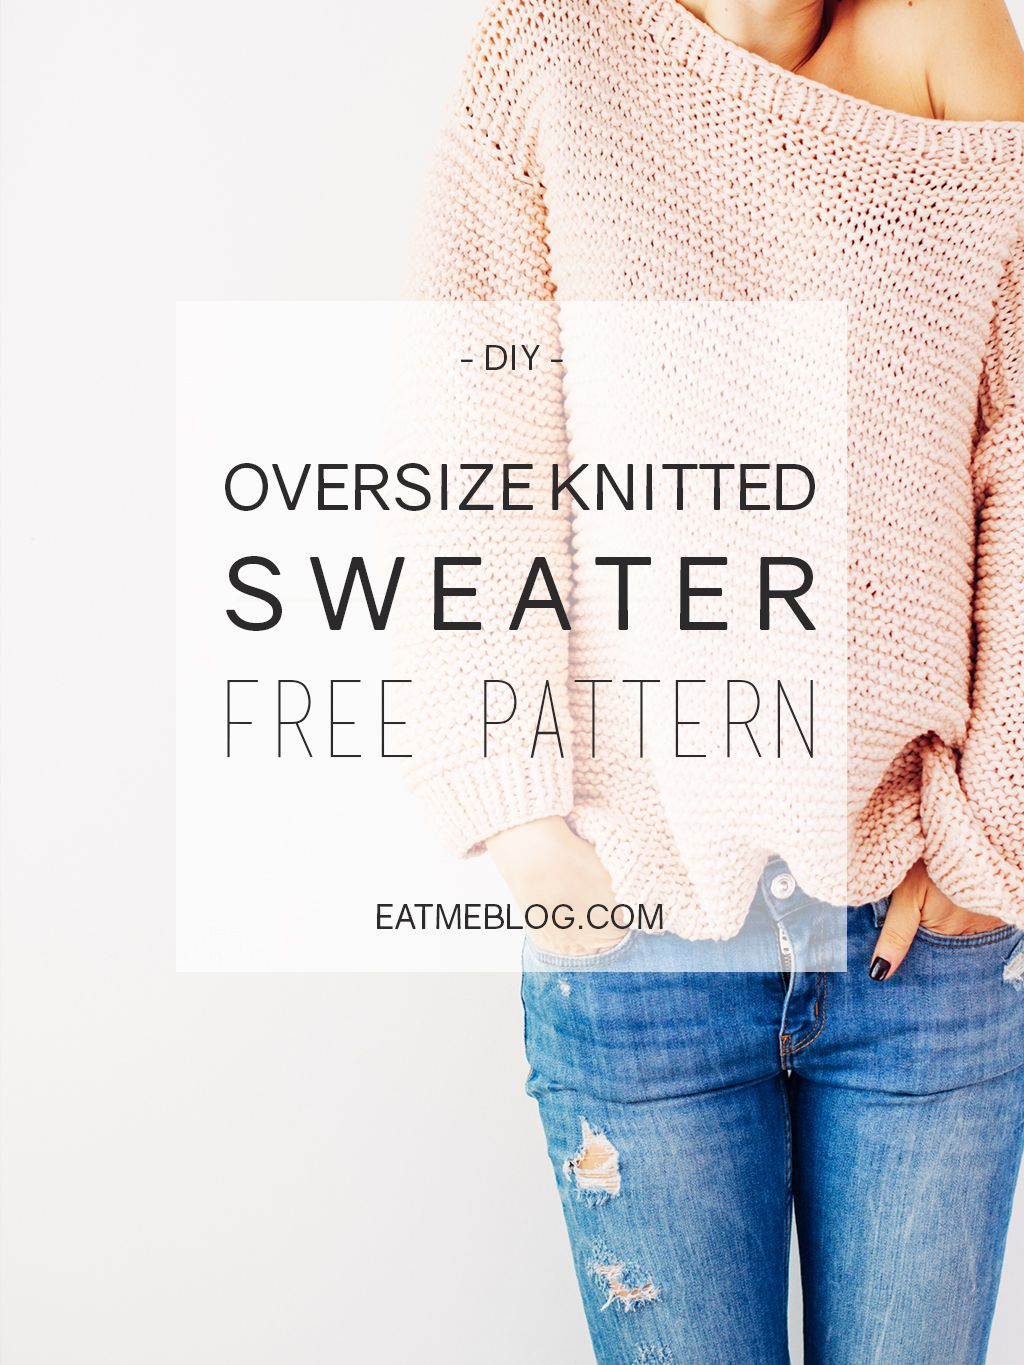 Oversized knitted sweater - FREE PATTERN. Easy step by step guide on ...